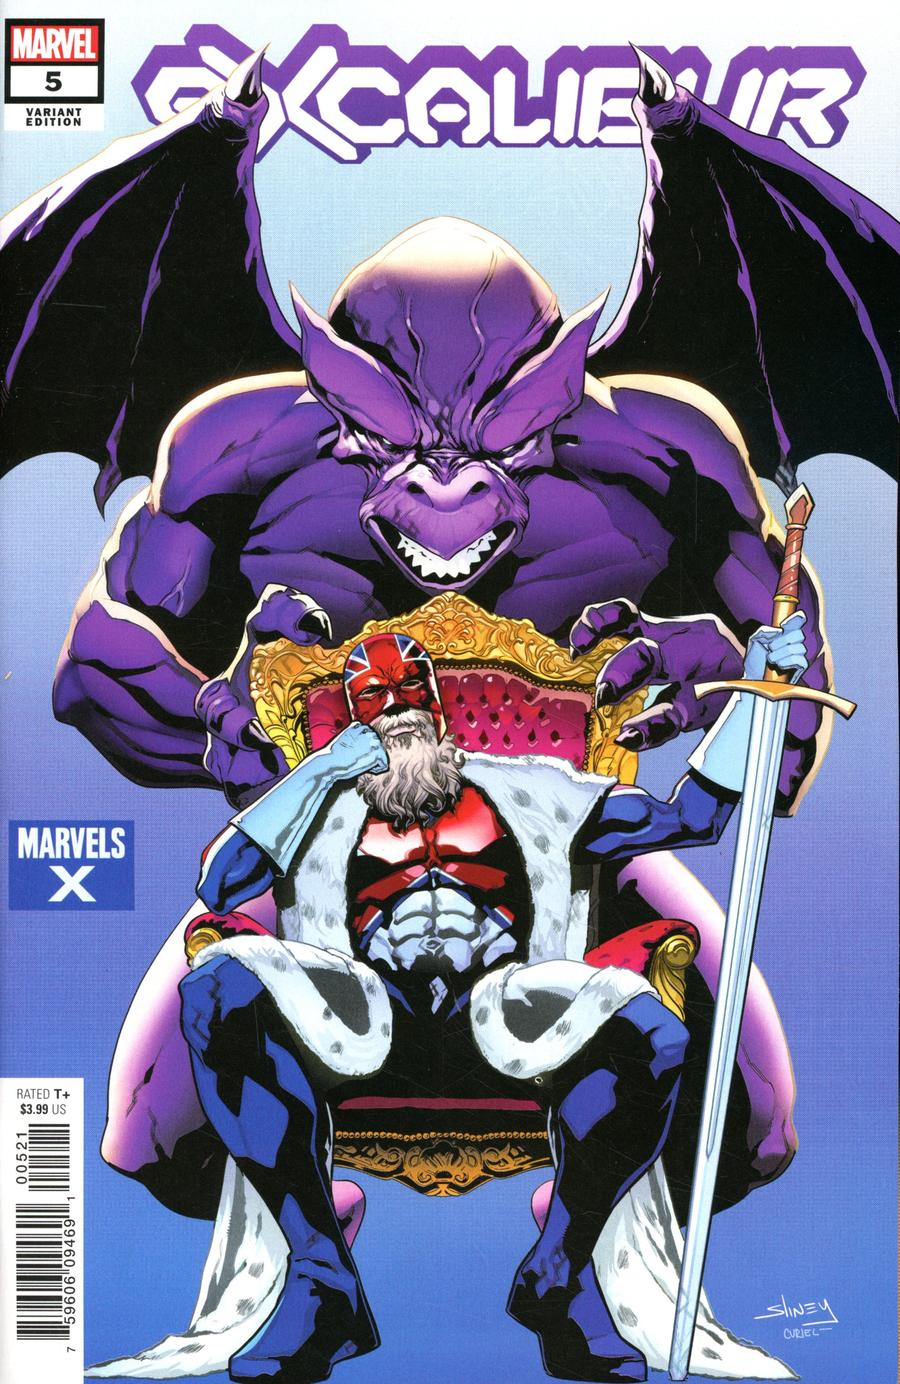 Excalibur Vol 4 #5 Cover B Variant Will Sliney Marvels X Cover (Dawn Of X Tie-In)